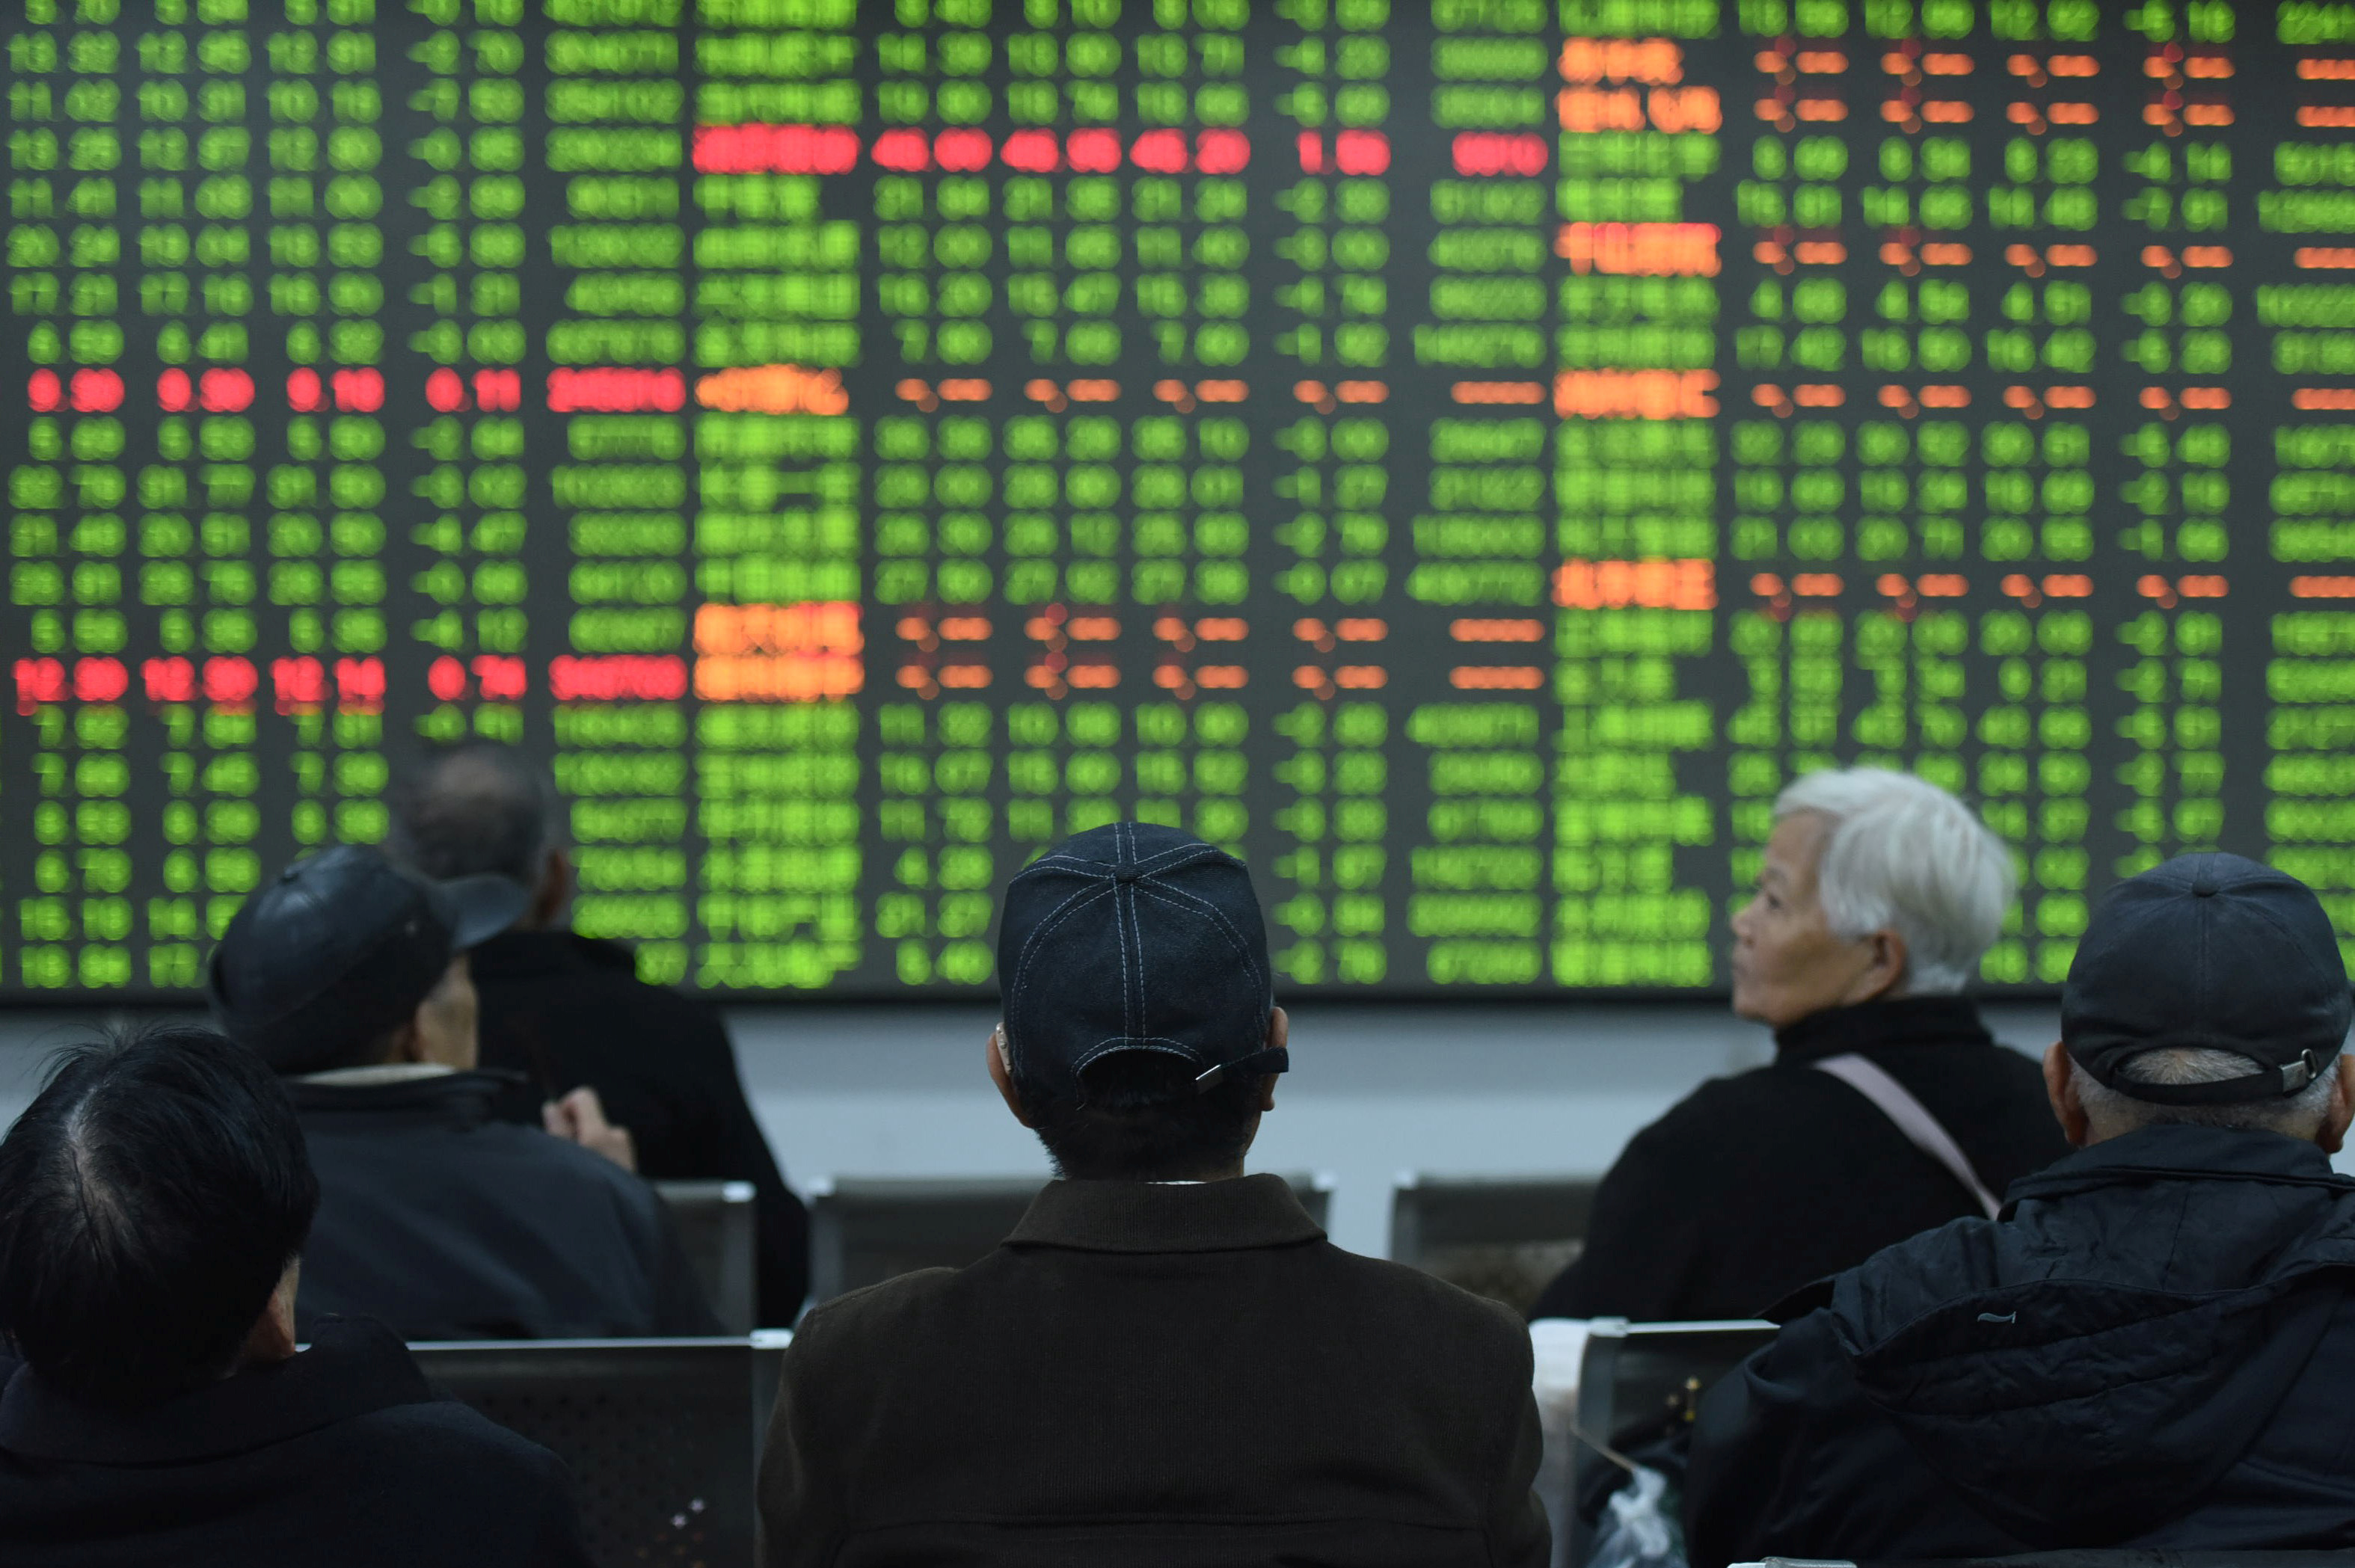 Investors sit in front of a board showing stock information at a brokerage house on the first day of trade in China since the Lunar New Year, in Hangzhou, Zhejiang province, China February 3, 2020. China Daily via REUTERS